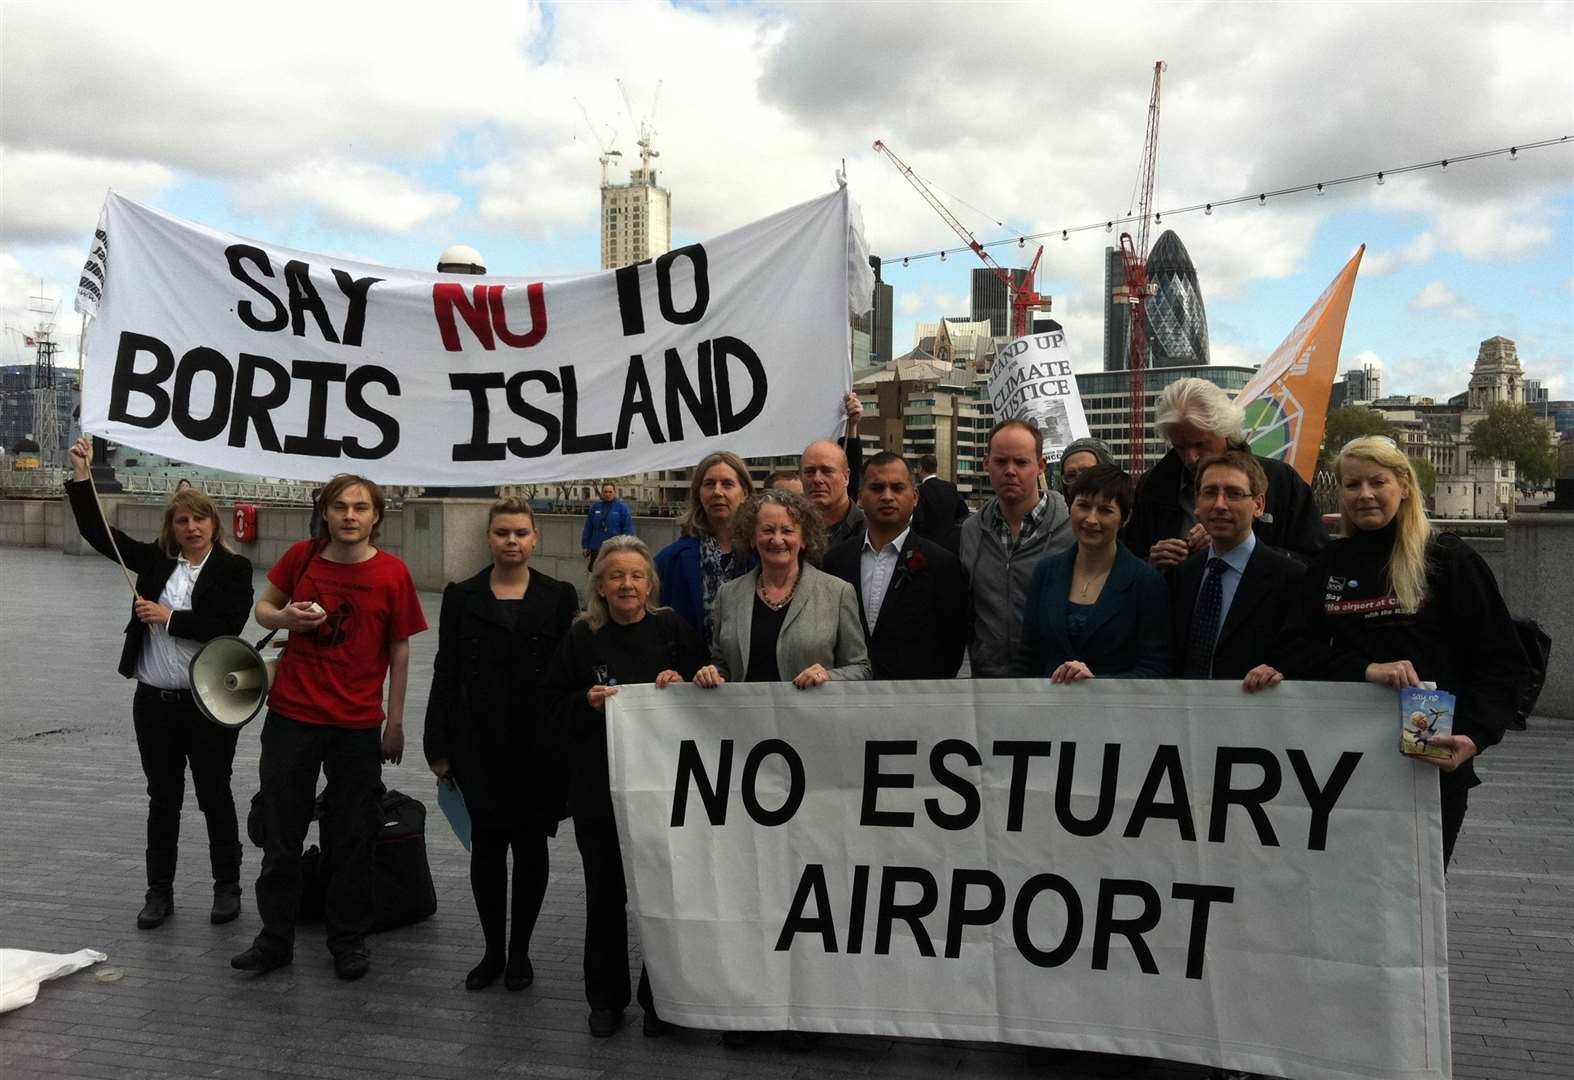 'He's broken promises before' - fears estuary airport plan could be revived